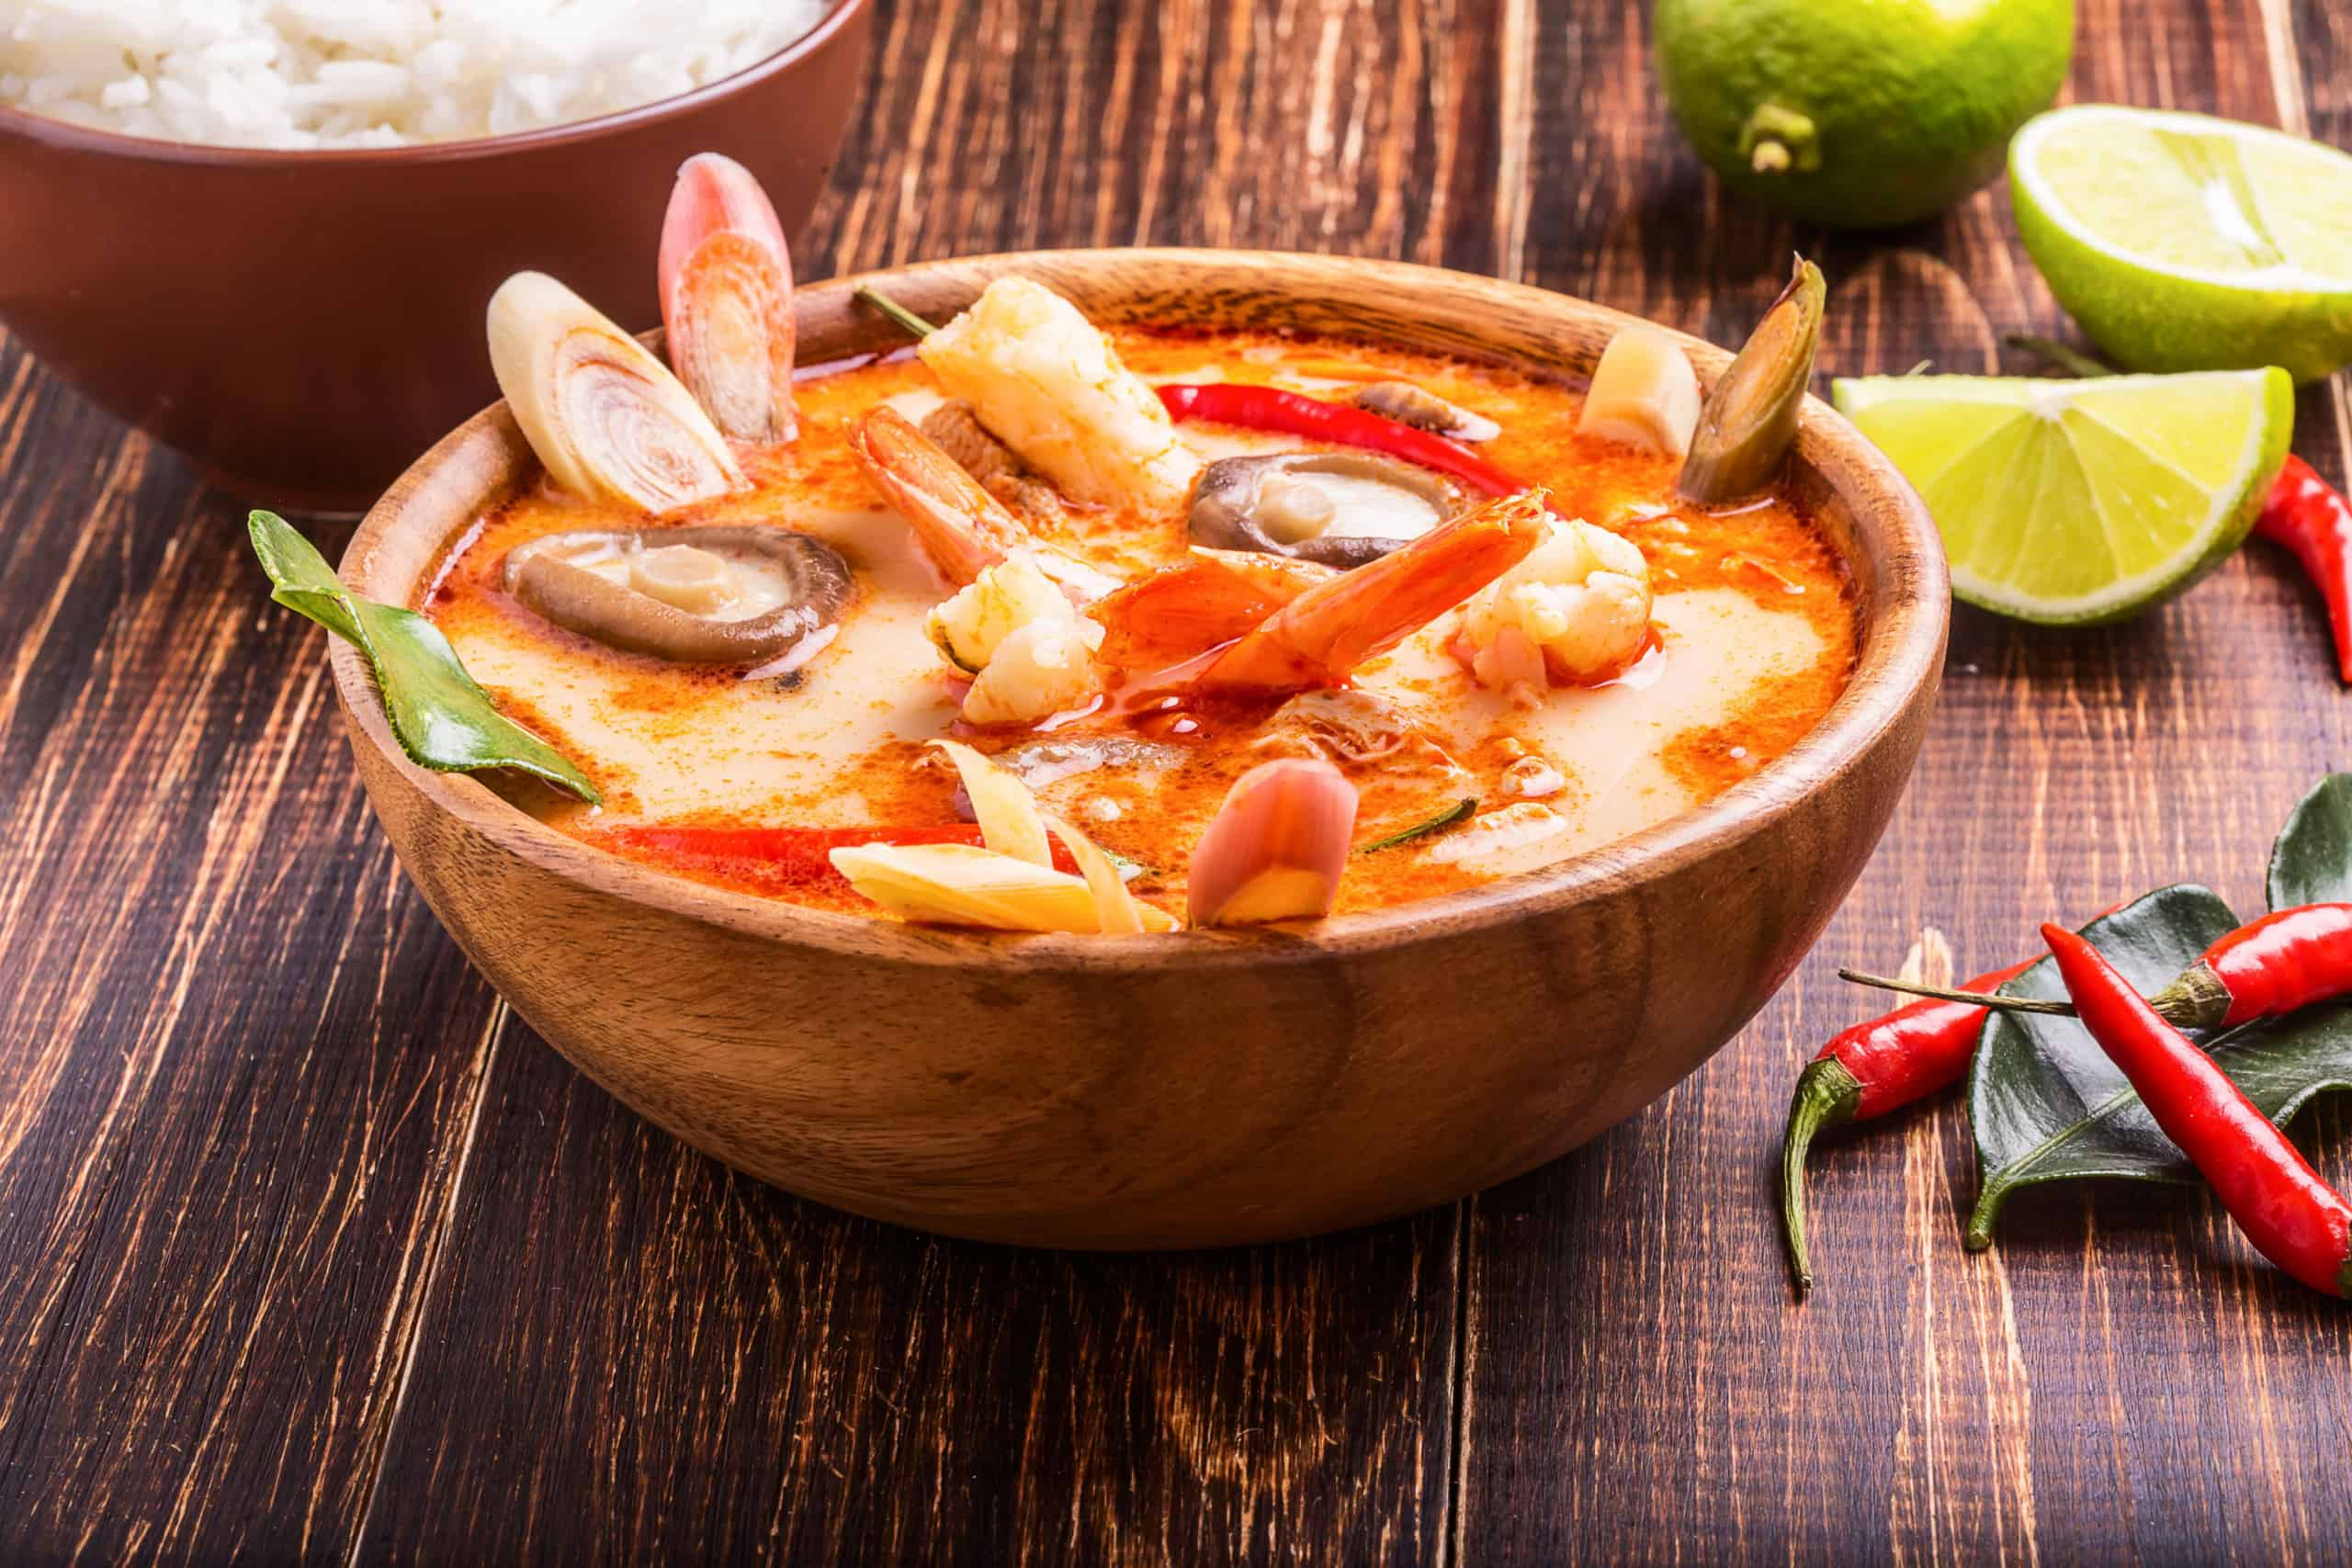 Thai Tom Yam soup with shrimp and shiitake mushrooms, served with lime and rice